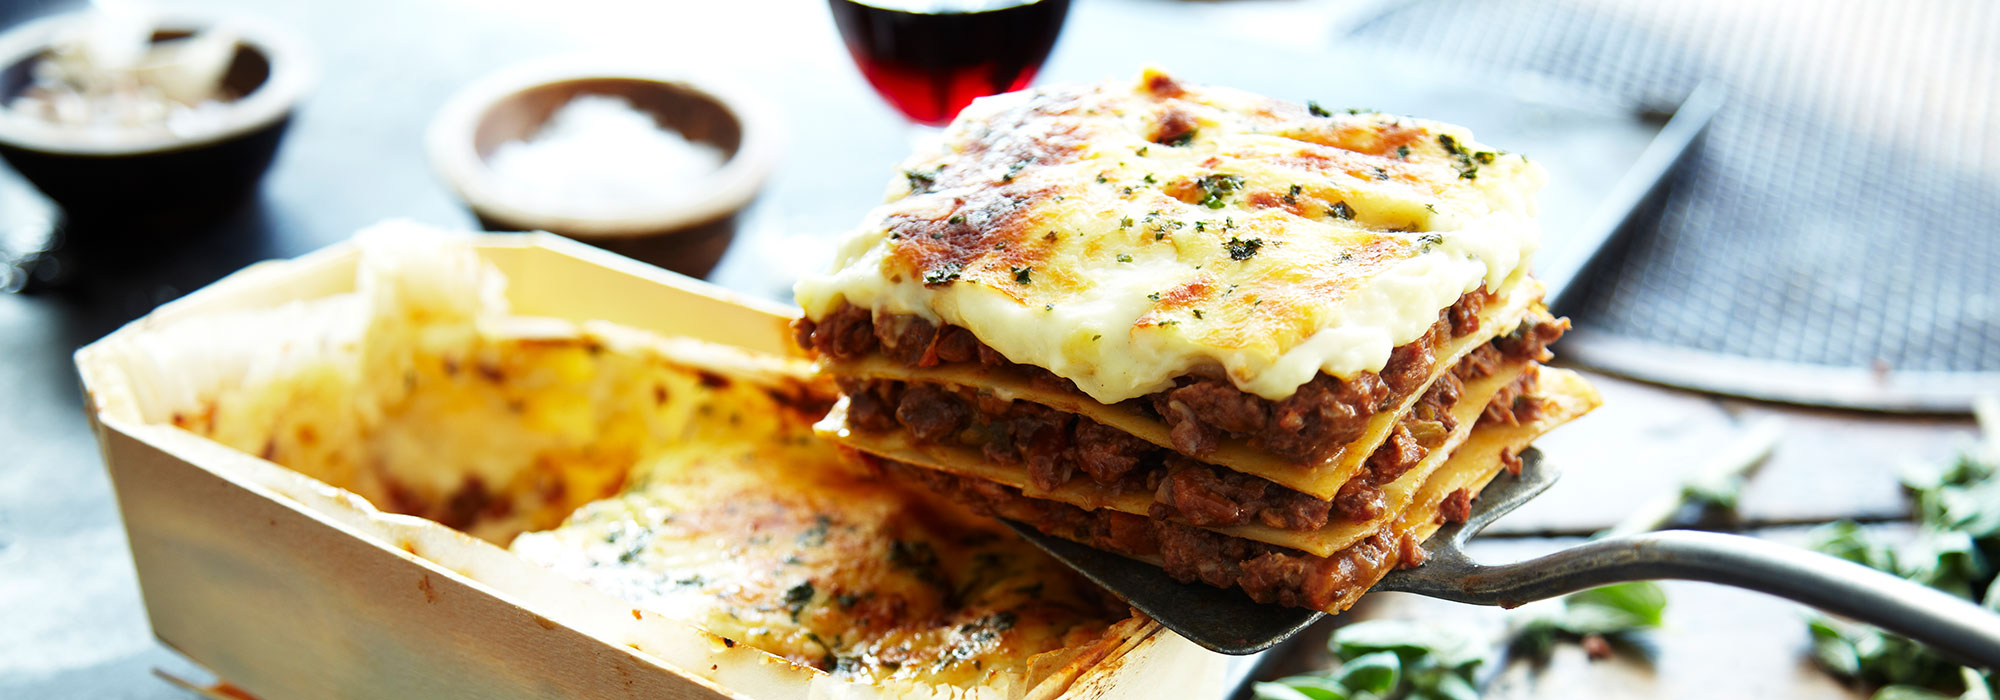 How To Cook Lasagna On A Gas Grill